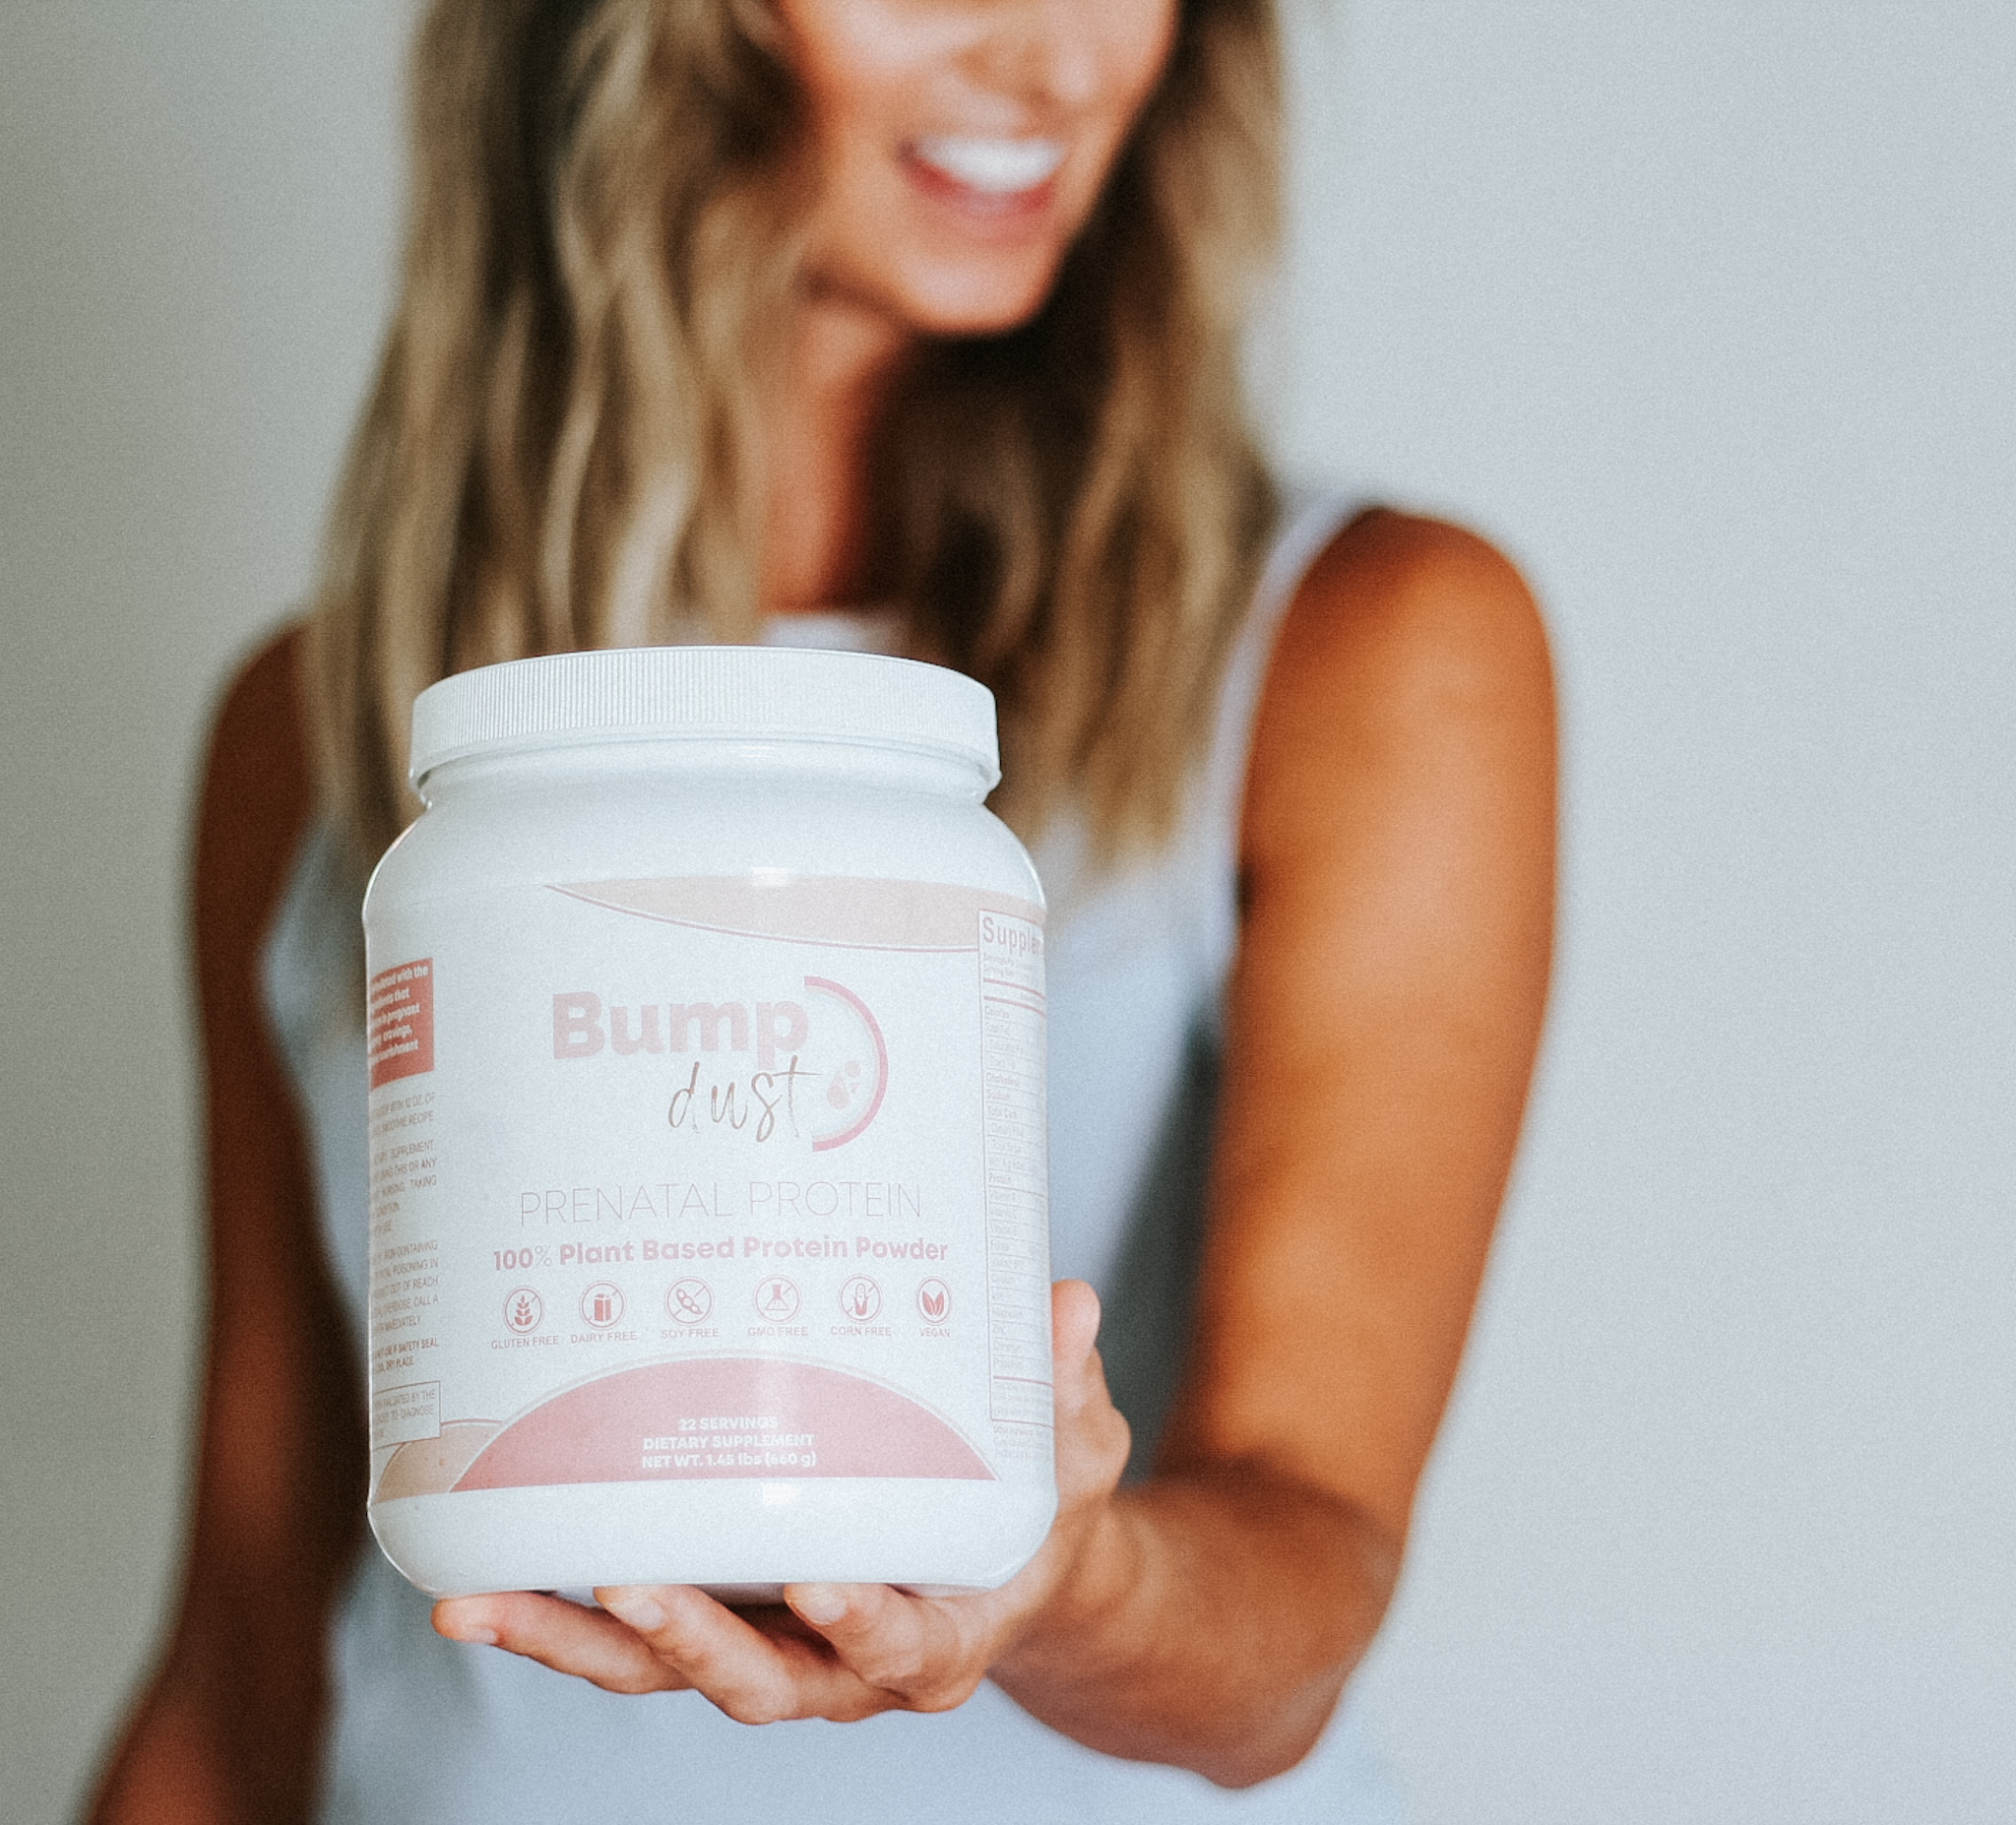 why is protein important during pregnancy